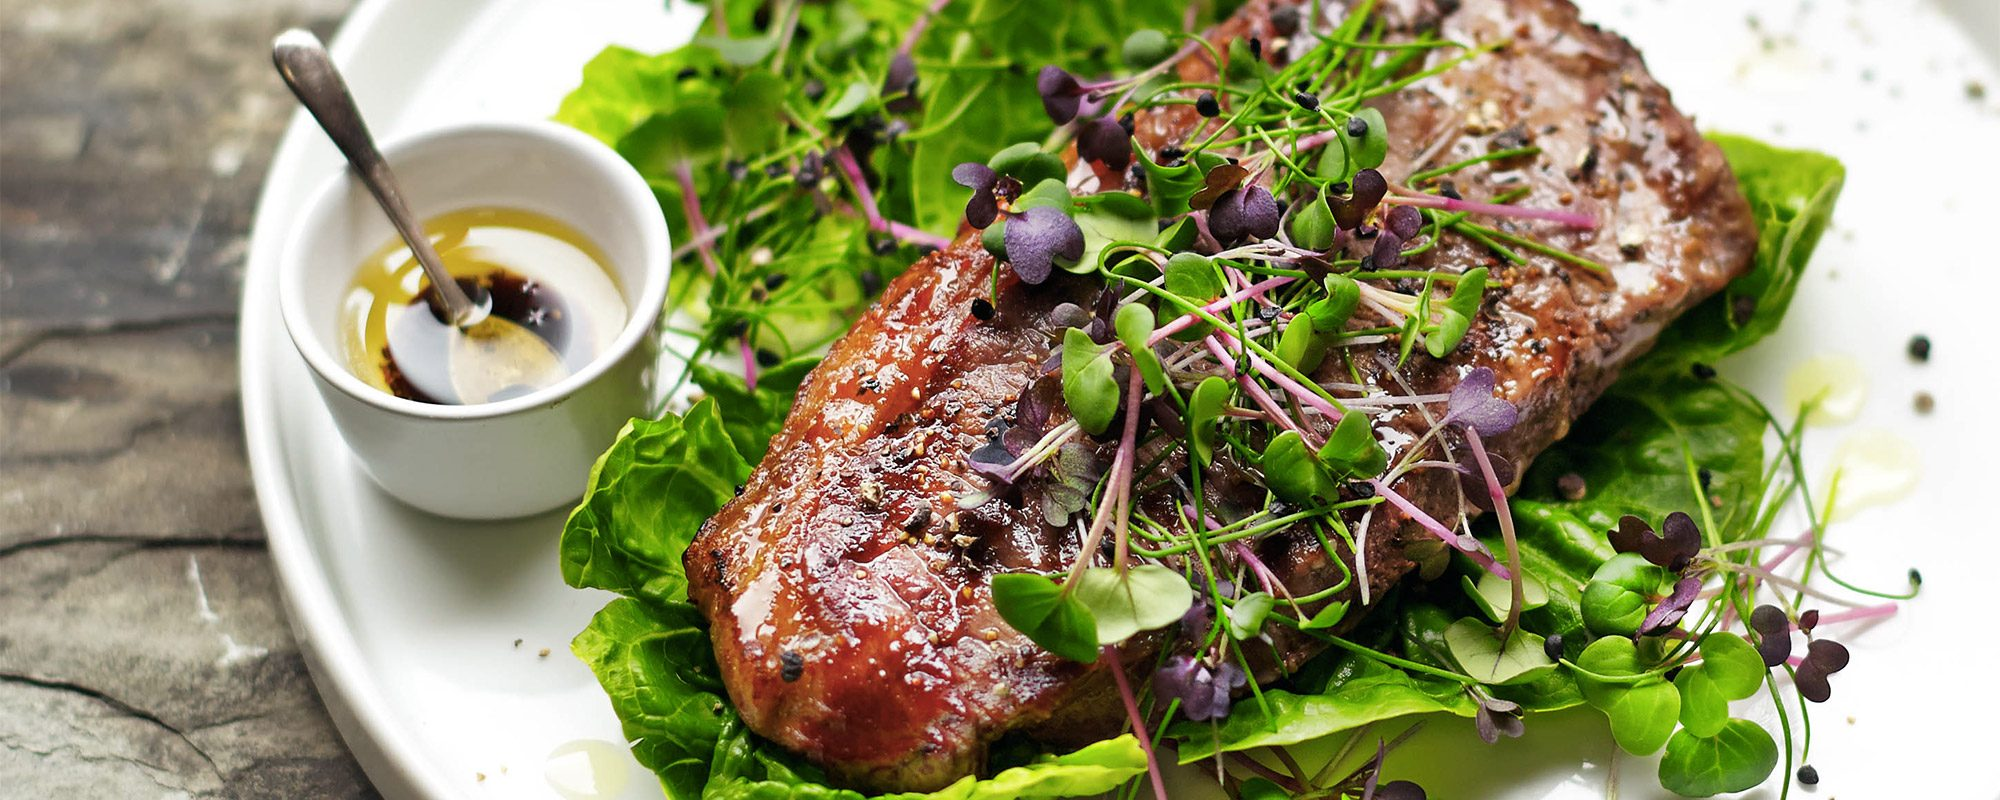 Sirloin Steak with Microgreens Salad